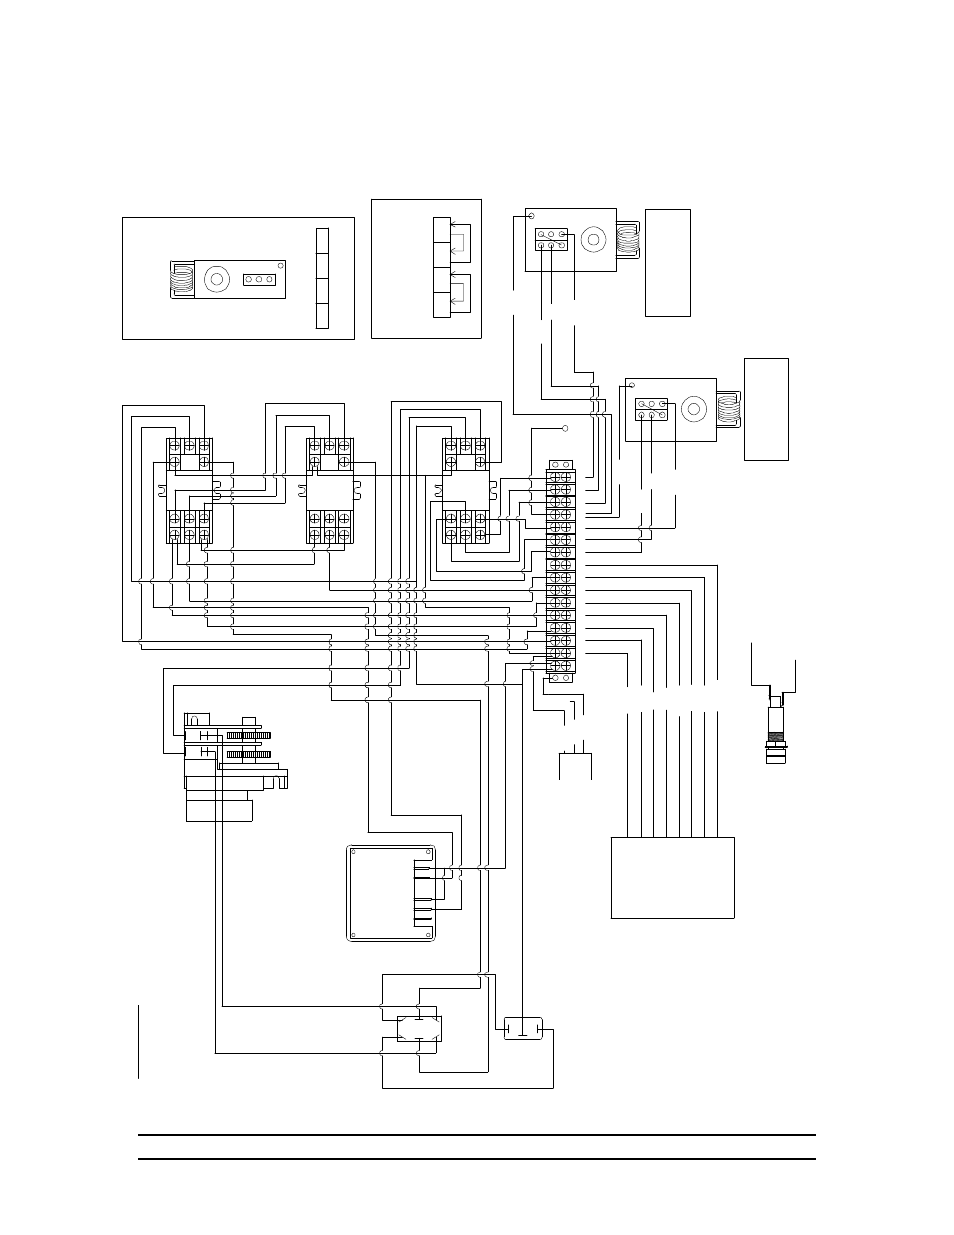 Curtain 3 Relay Wiring Diagram : 30 Wiring Diagram Images